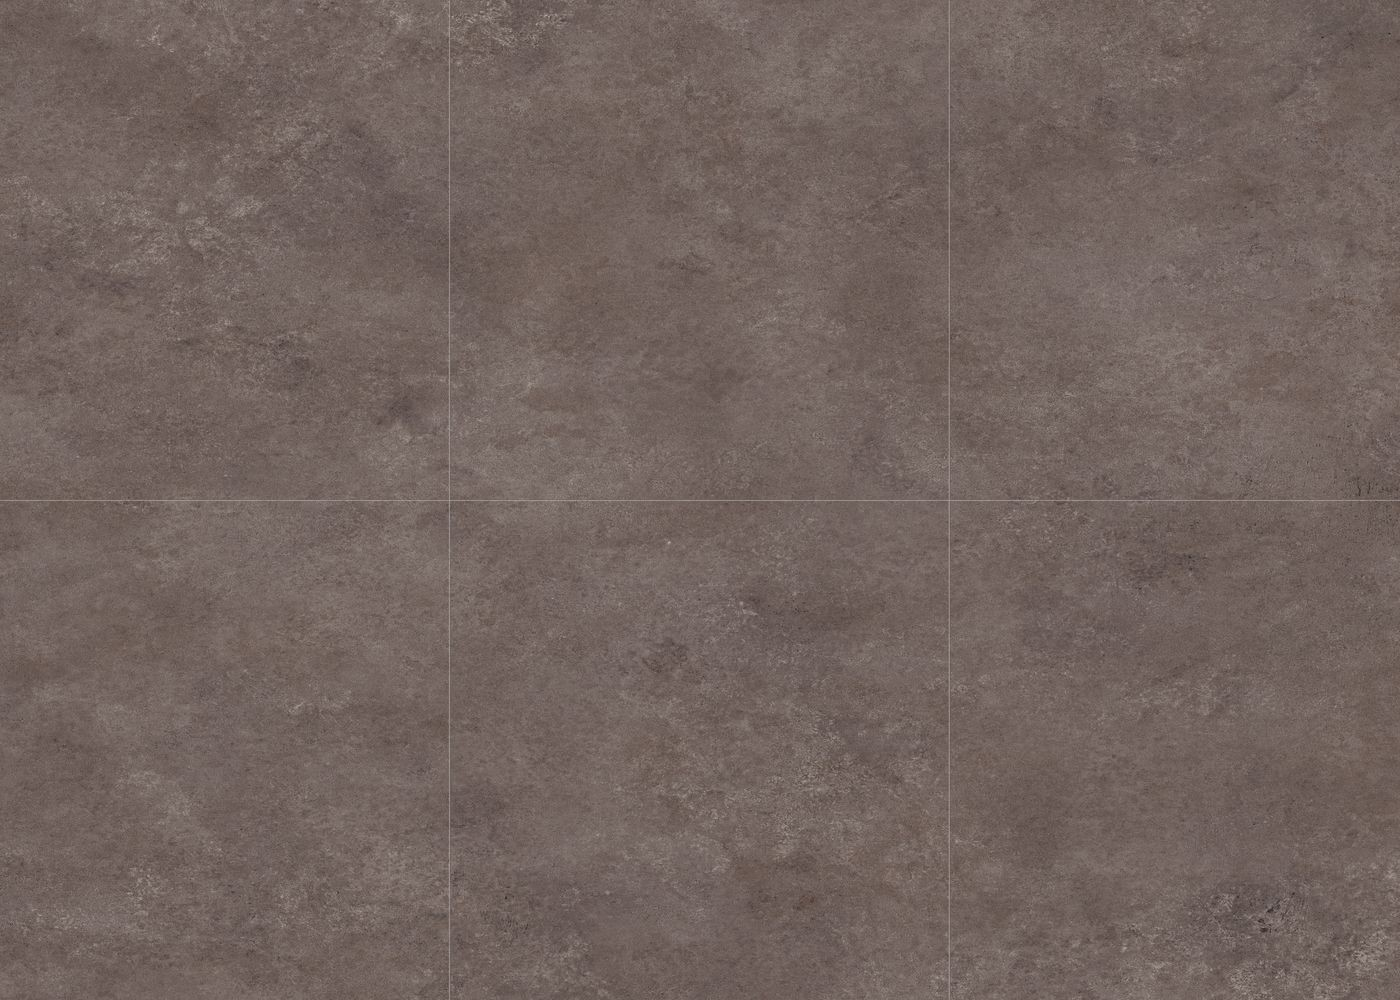 Dalles vinyles LVT, passage intensif,  clipsable Monolame G4 Monsanto 900d